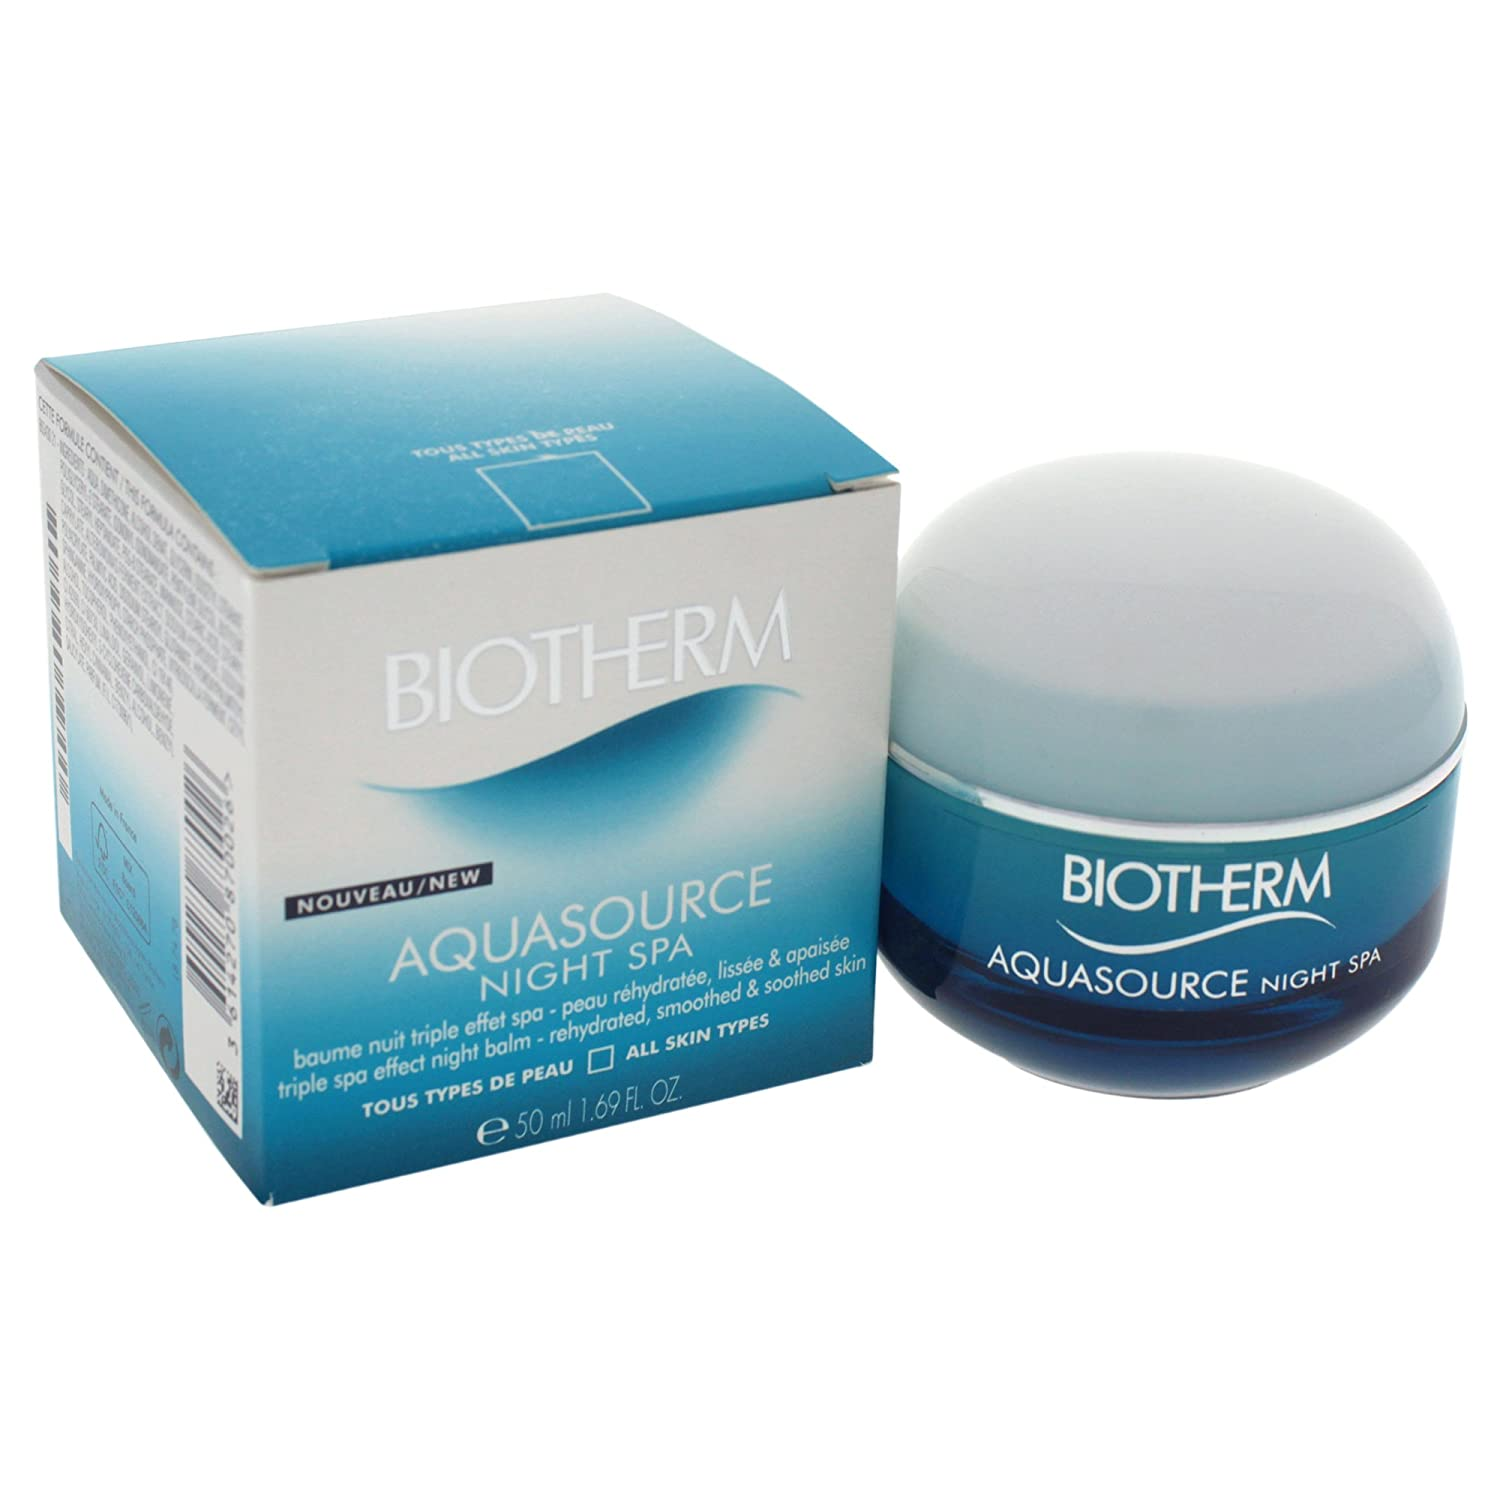 Biotherm Aquasource Spa Triple Effect Night Balm, 1.69 Ounce Mainspring America Inc. DBA Direct Cosmetics 3614270870026 L8747800_-50